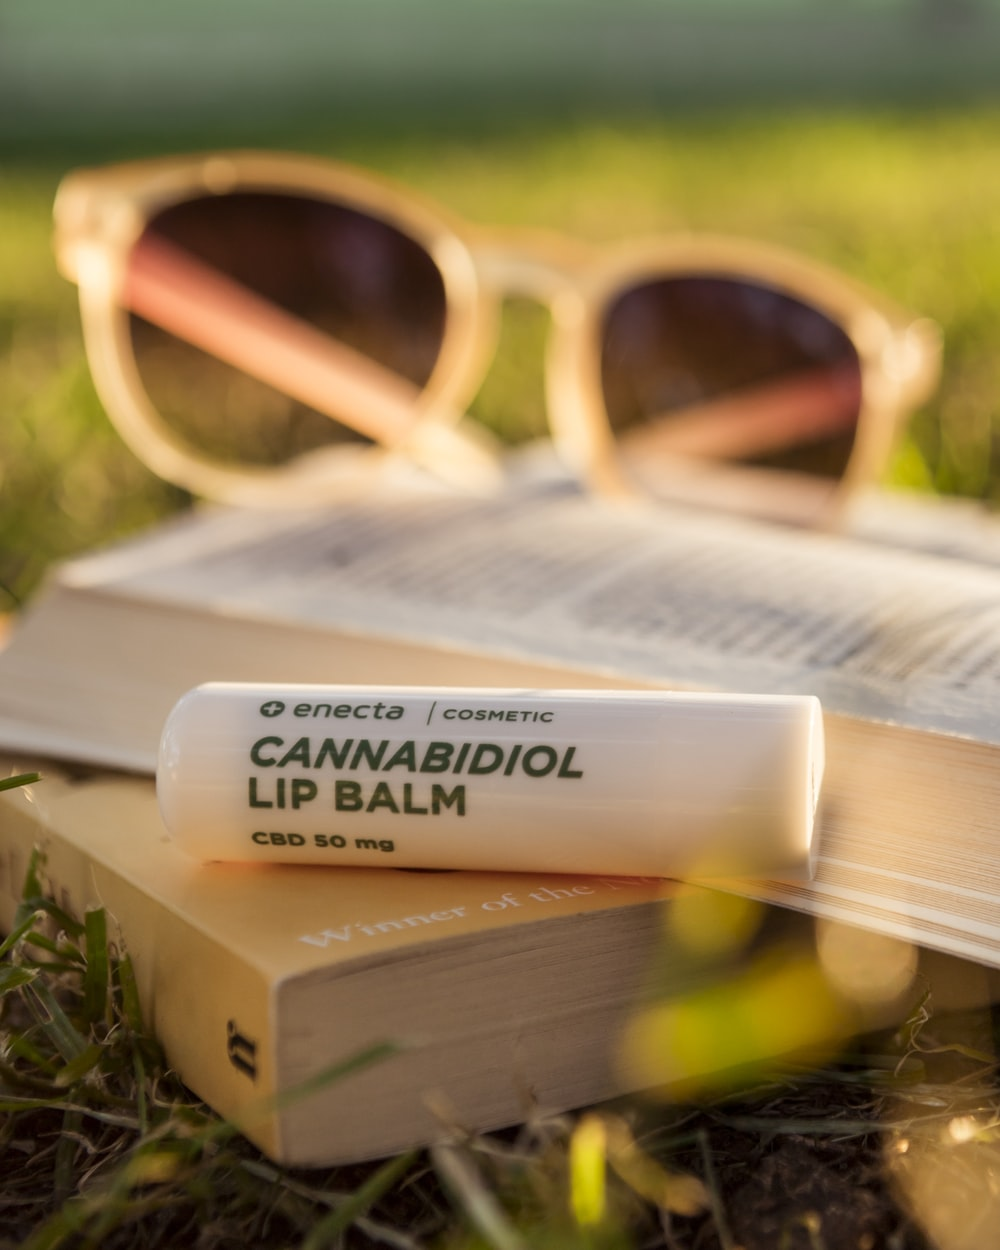 Cannabidiol lip balm on book on grass during daytime